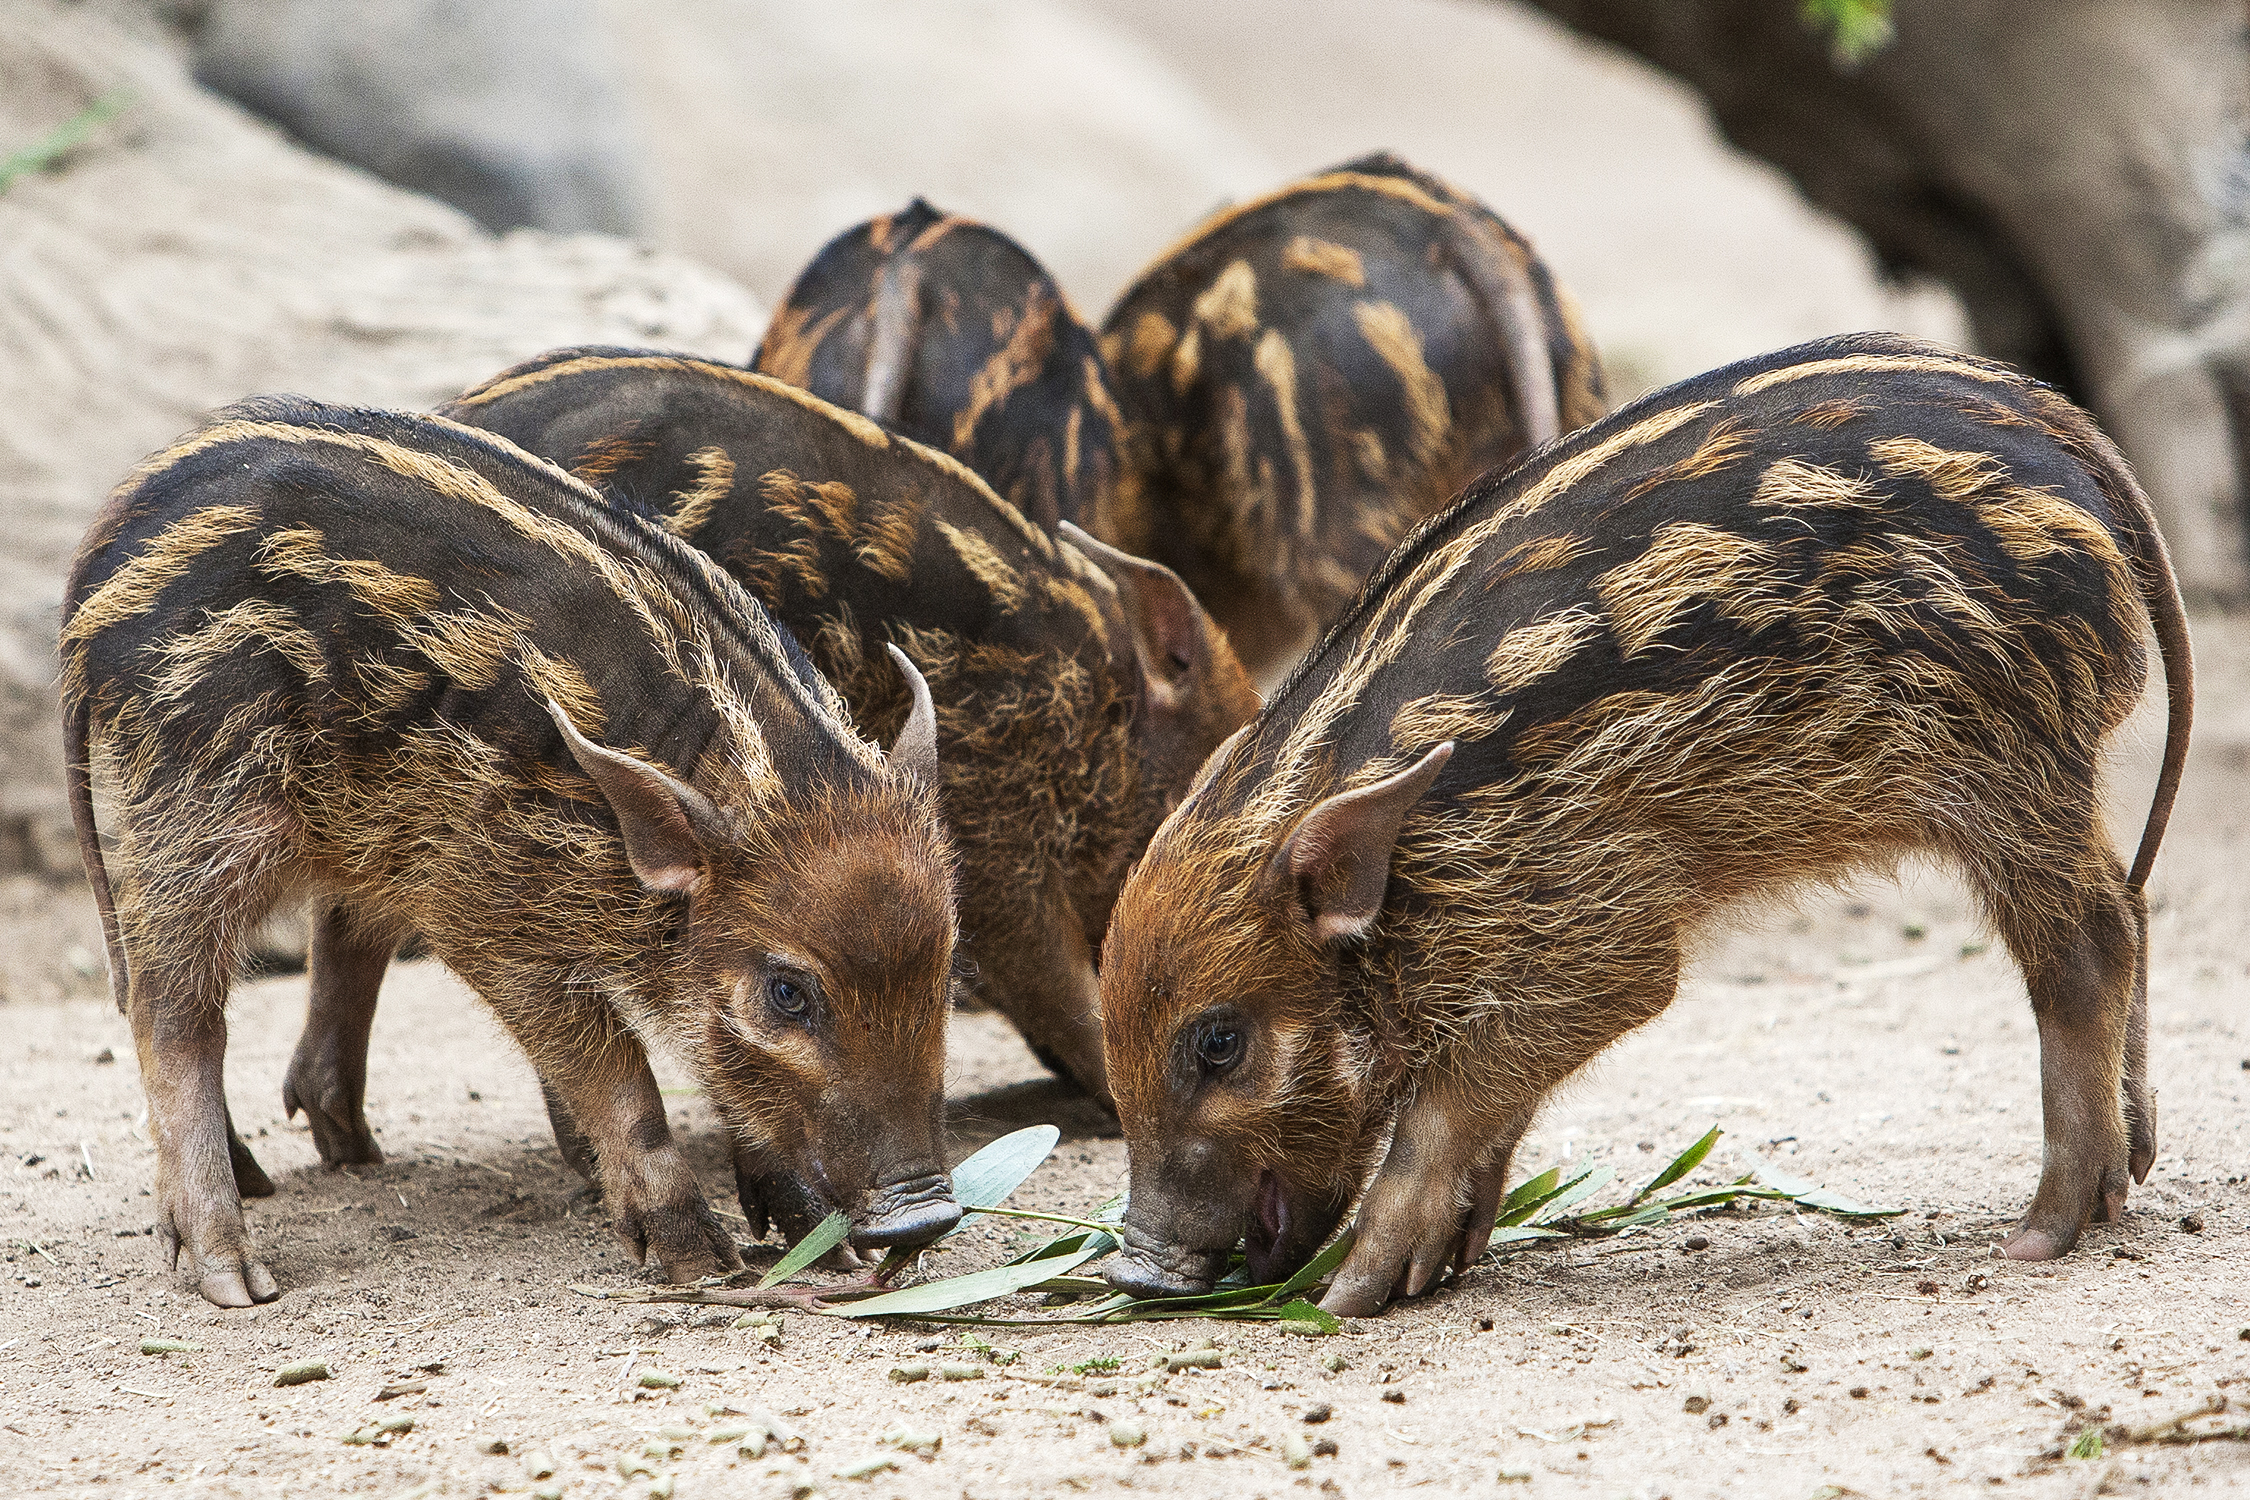 Piglets Learn How to Eat